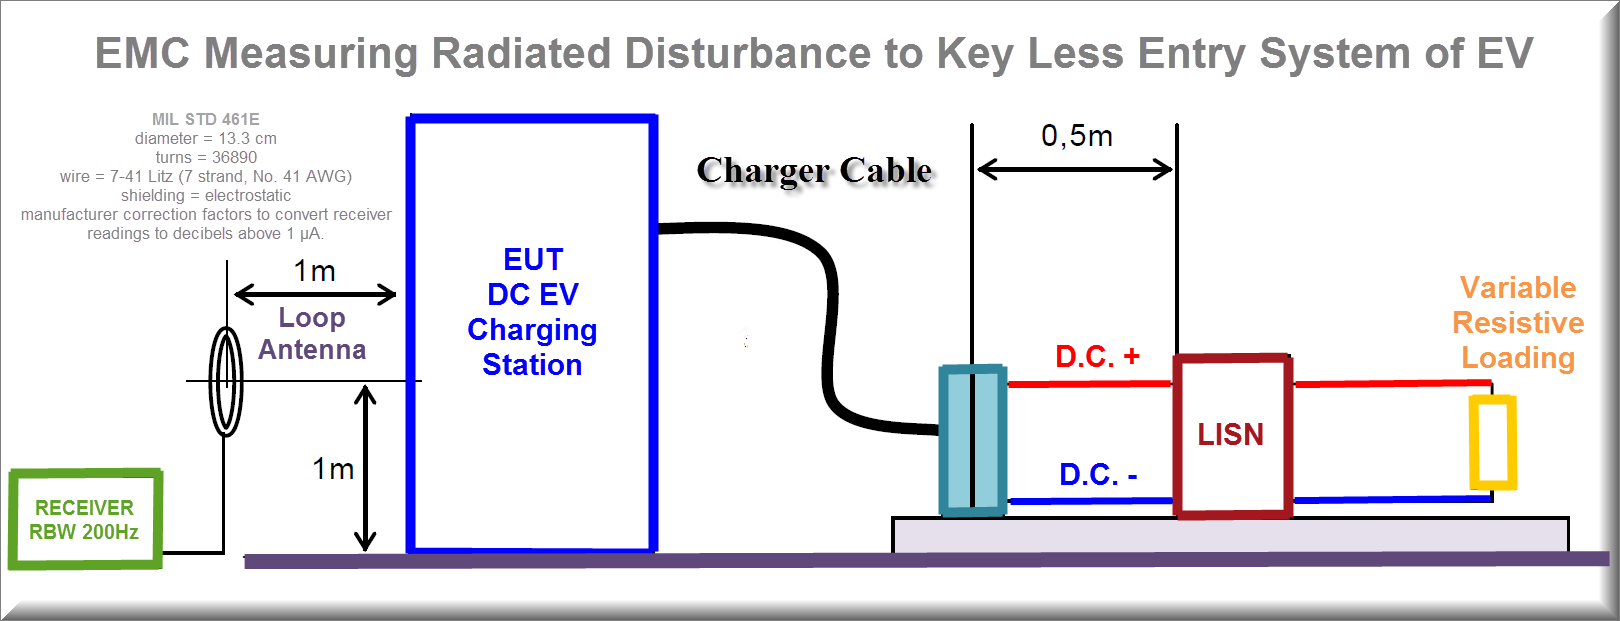 Emc Ev July 2015 Charging Stations Wiring Diagram Repeat Step 2 Through 7 For Each Face Of The Eut And Electrical Connector